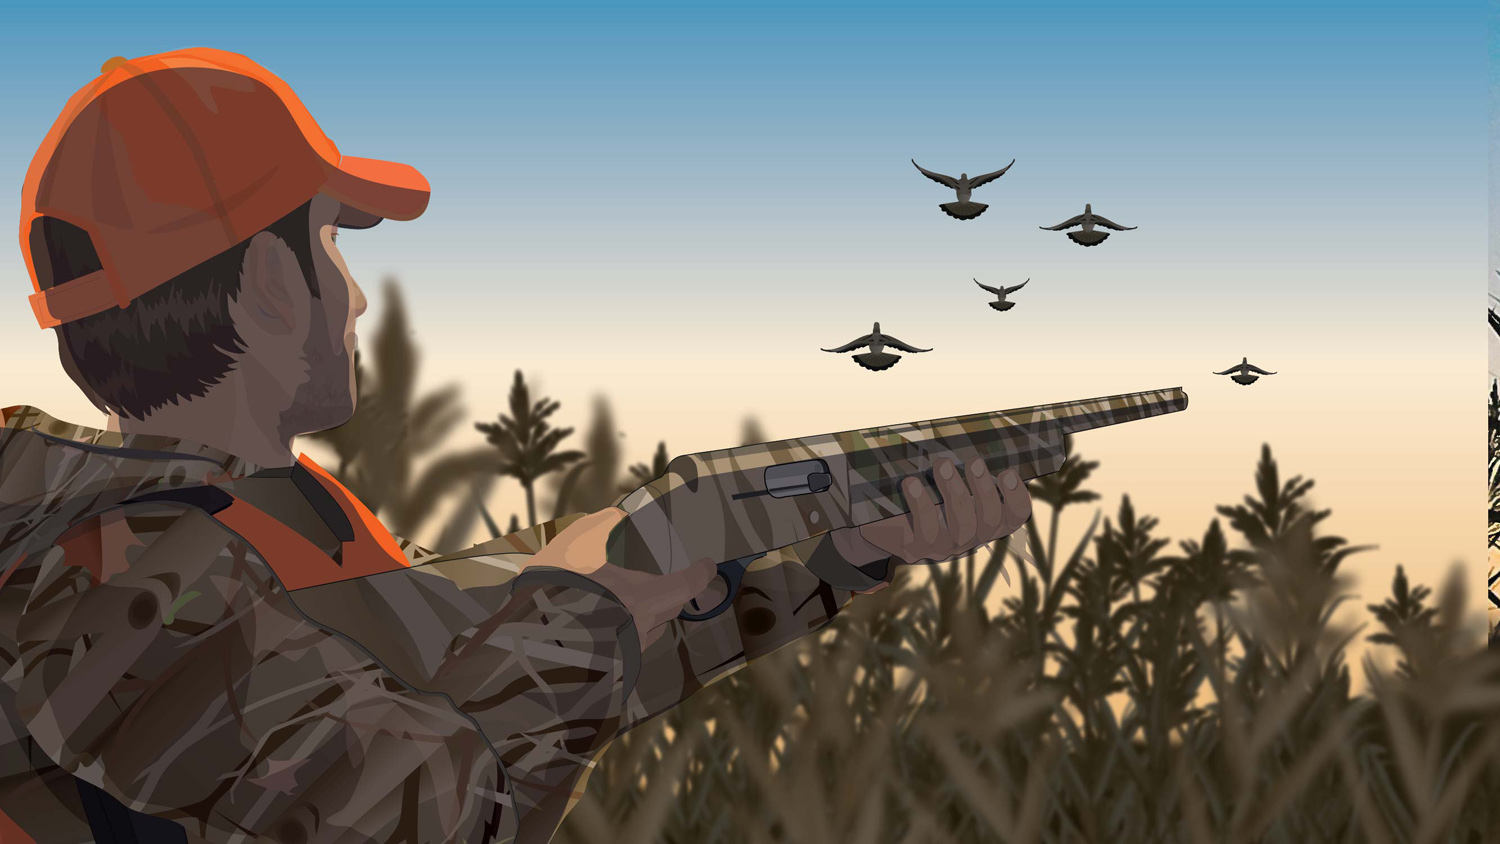 Illustration of a camouflaged hunter hunting flying game birds.